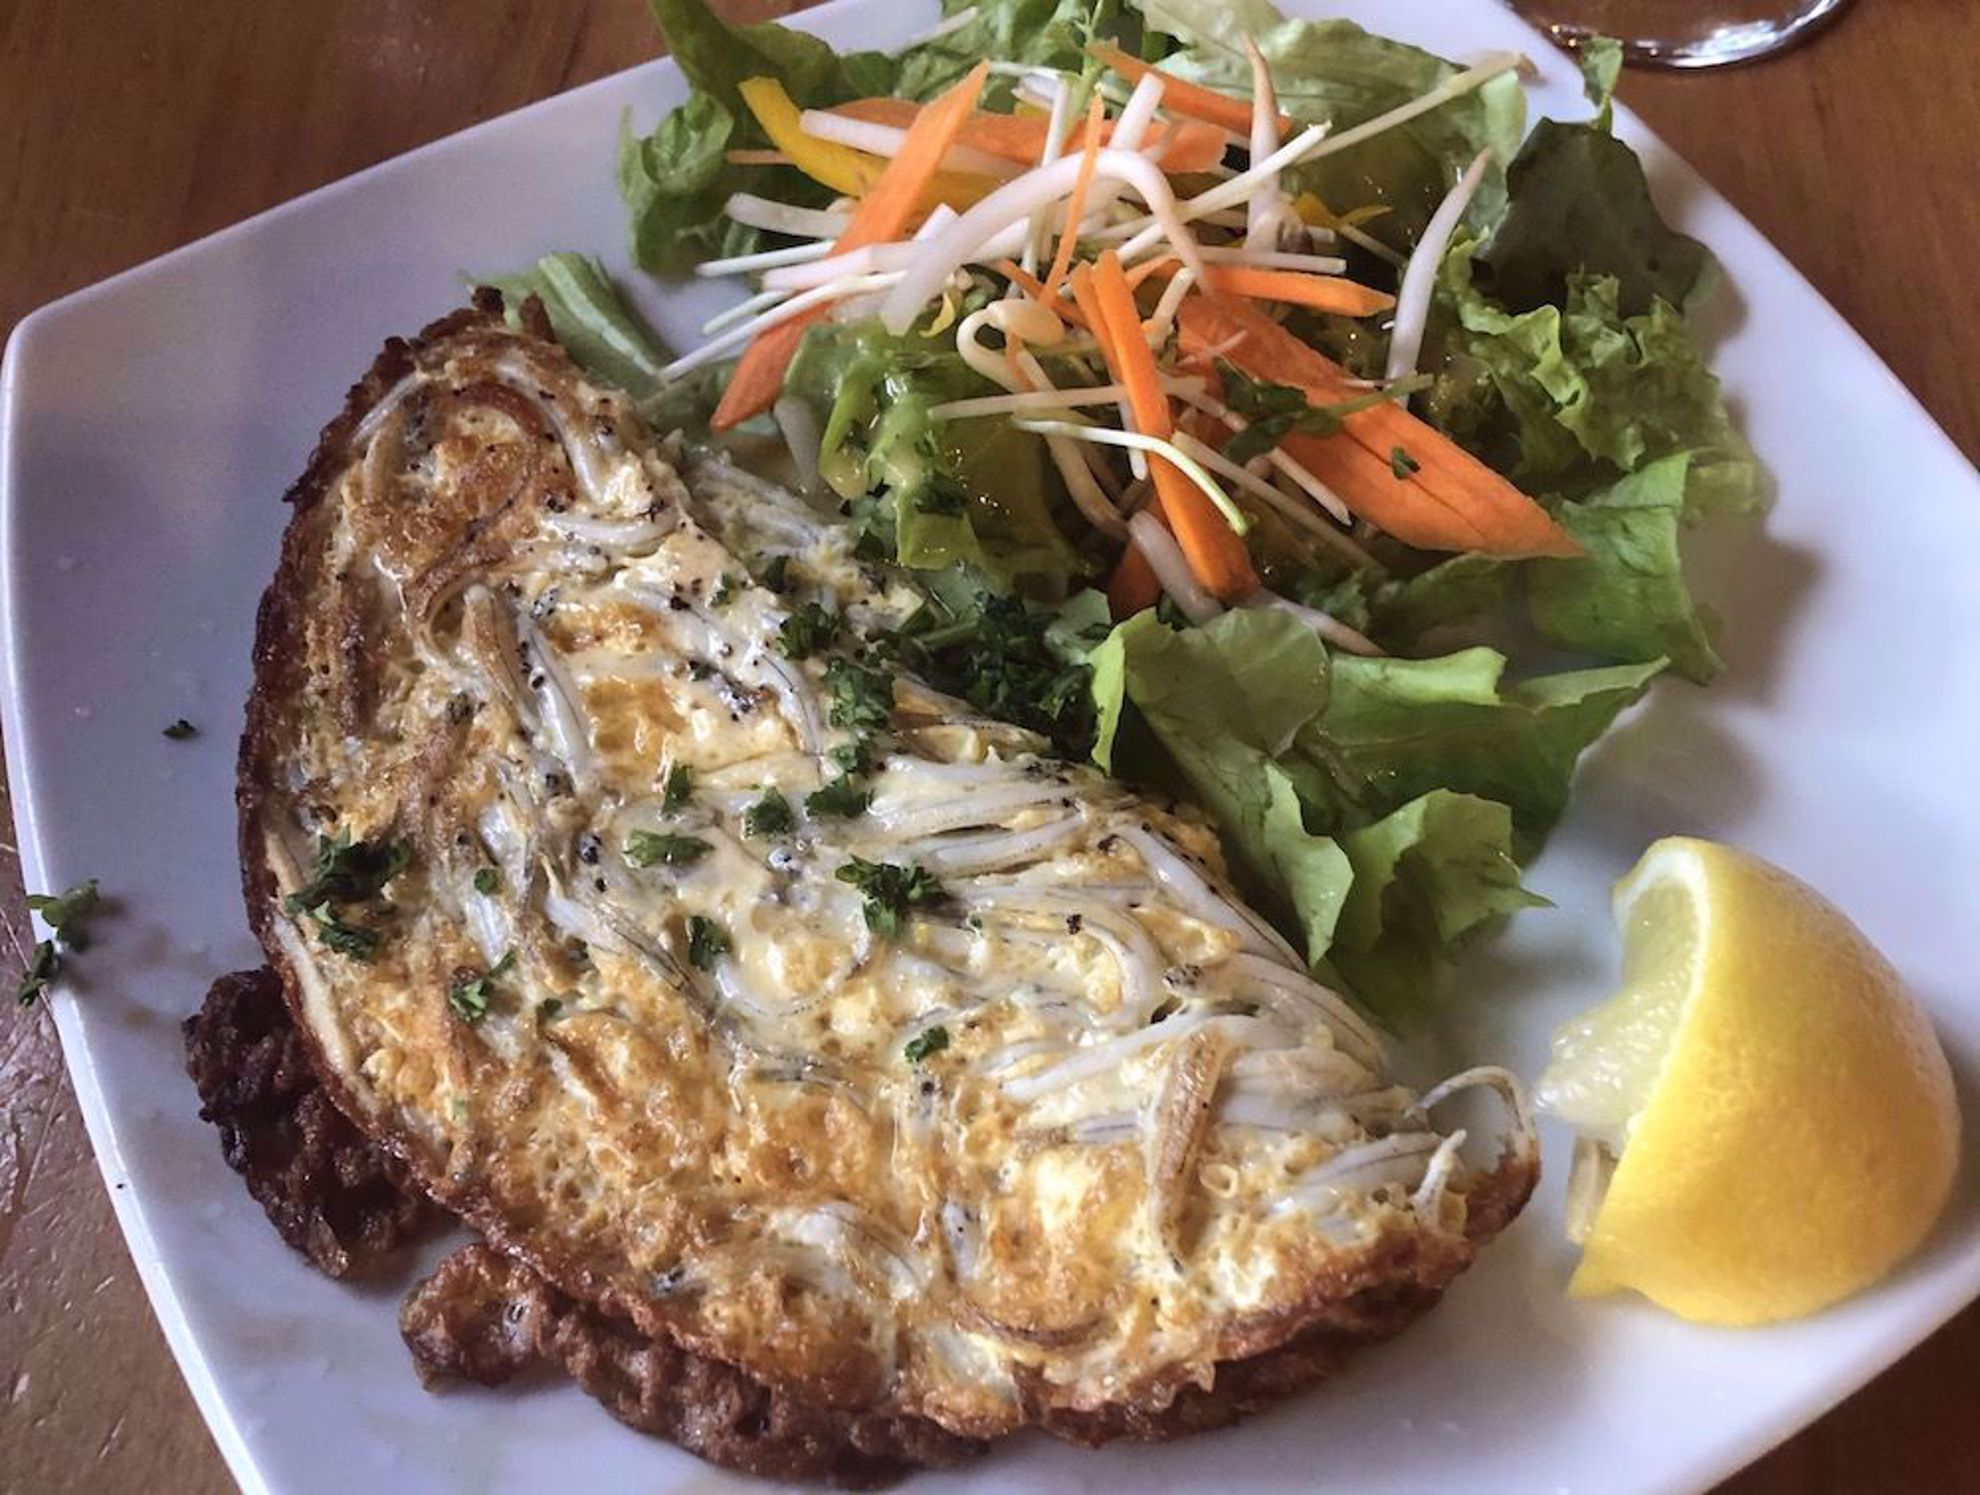 Whitebait, a New Zealand specialty